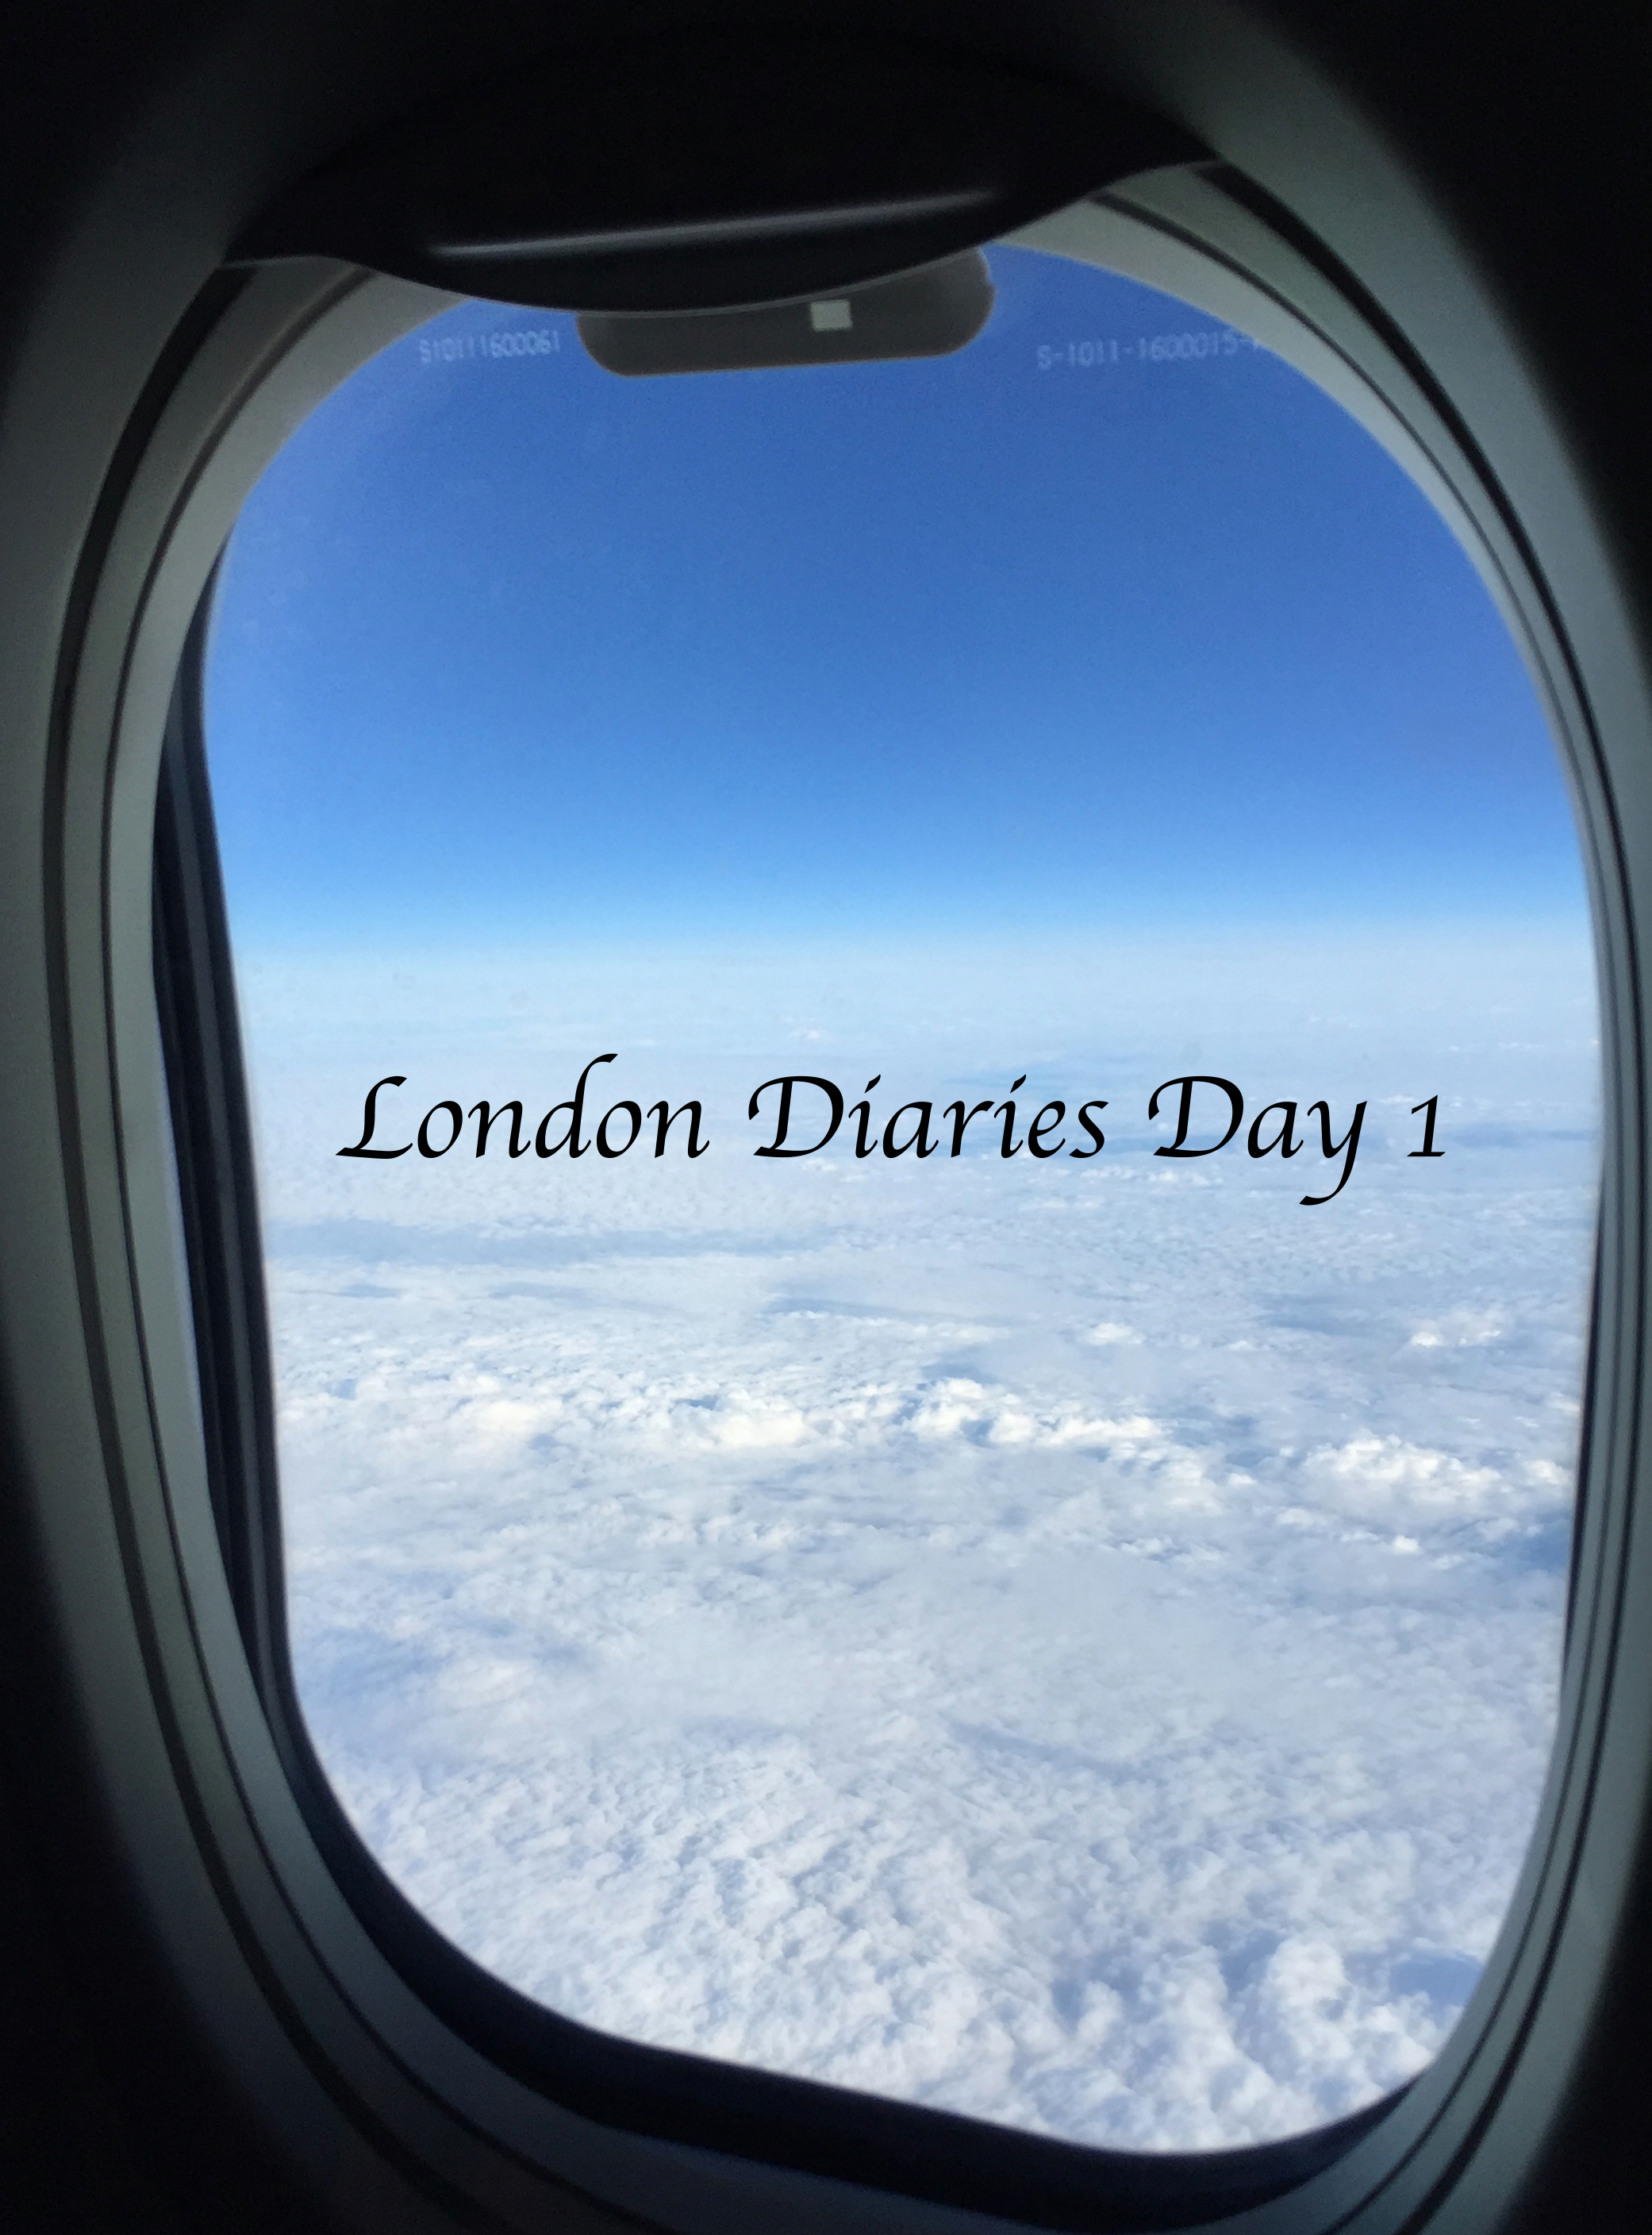 London Diaries Day 1.